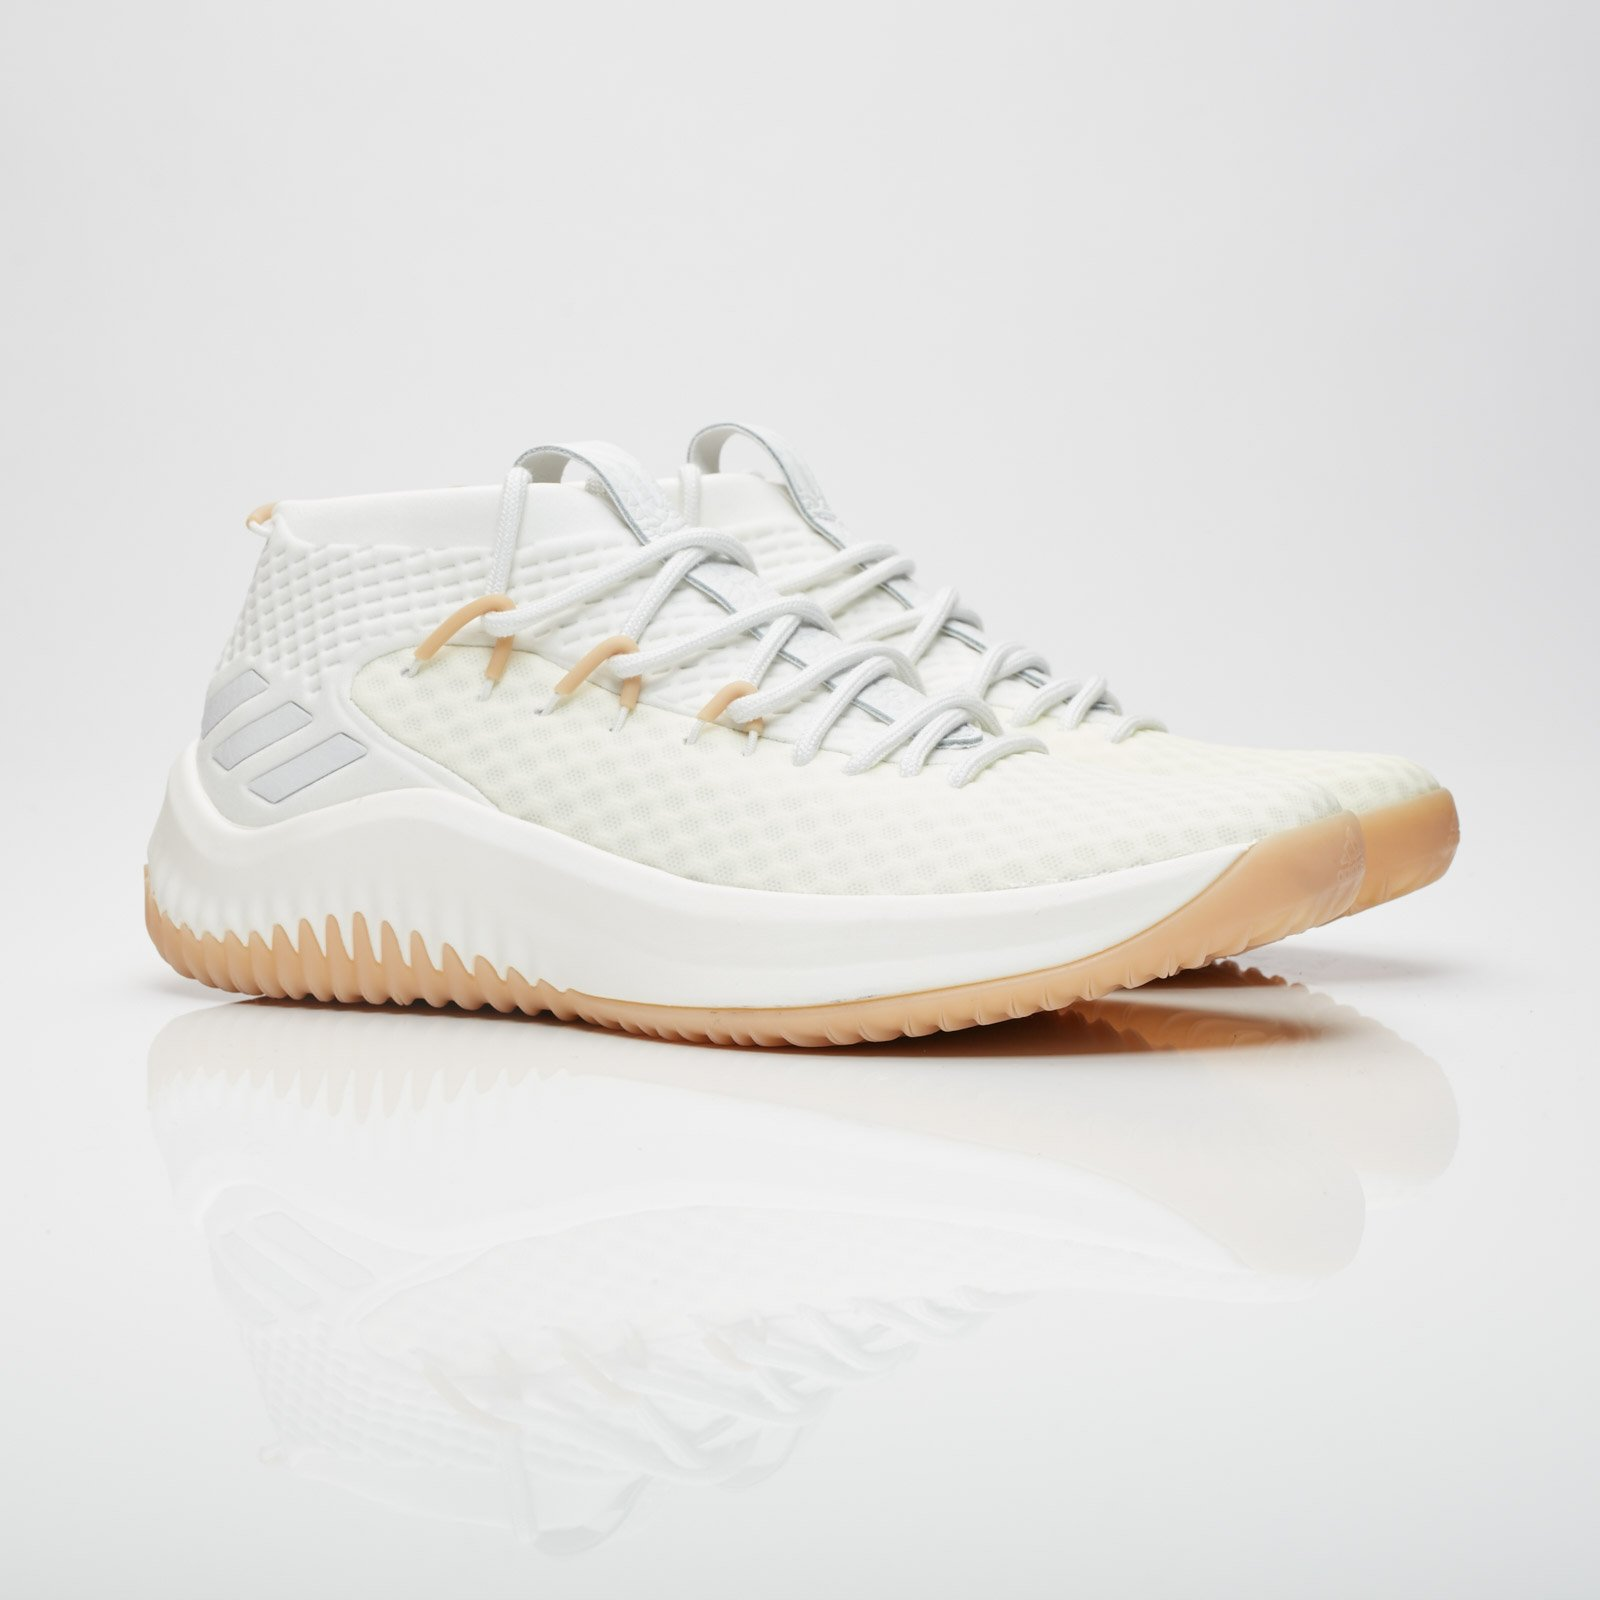 a151c8d0ca16 adidas Dame 4 - By4496 - Sneakersnstuff